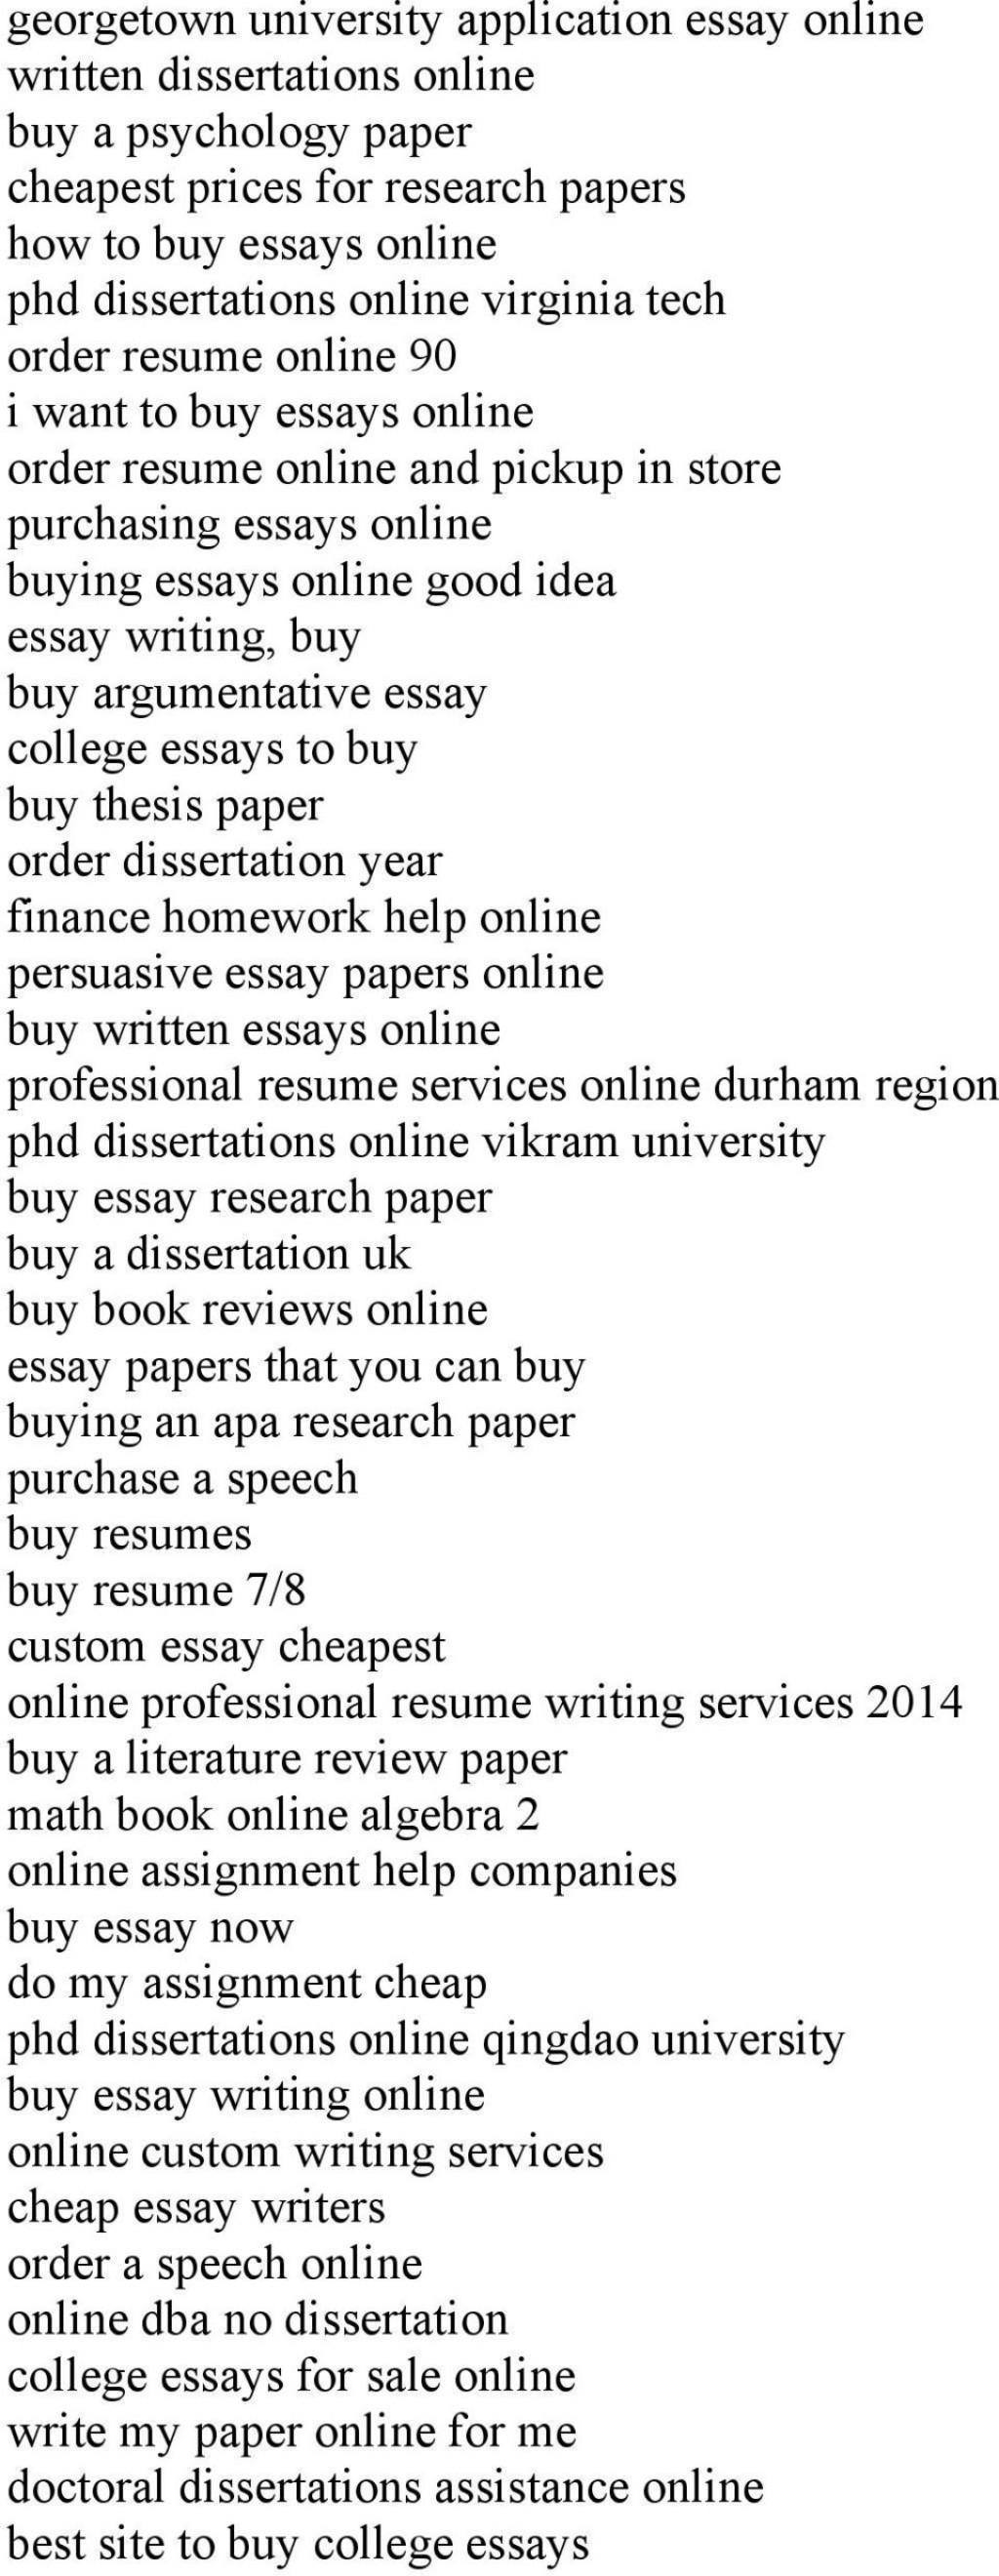 004 Research Paper Buying Page 4 Best A Consumer Behaviour Is Plagiarism Large